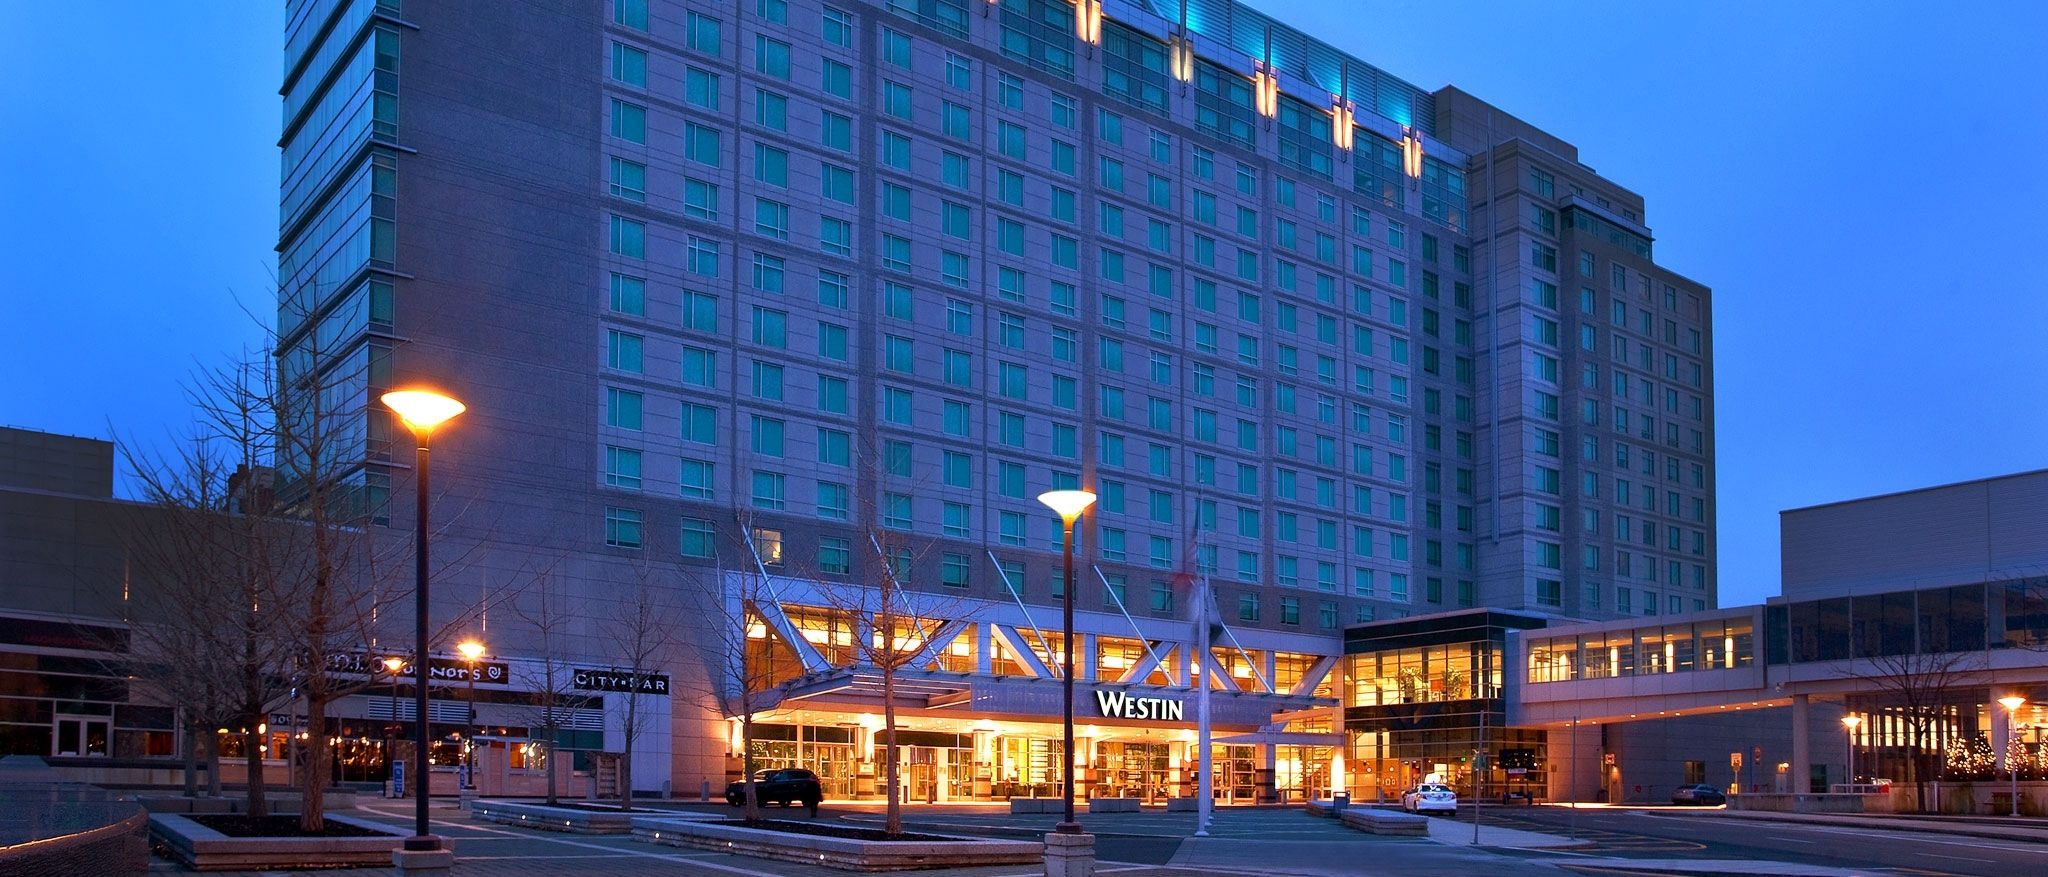 The Westin Boston Waterfront - Exterior